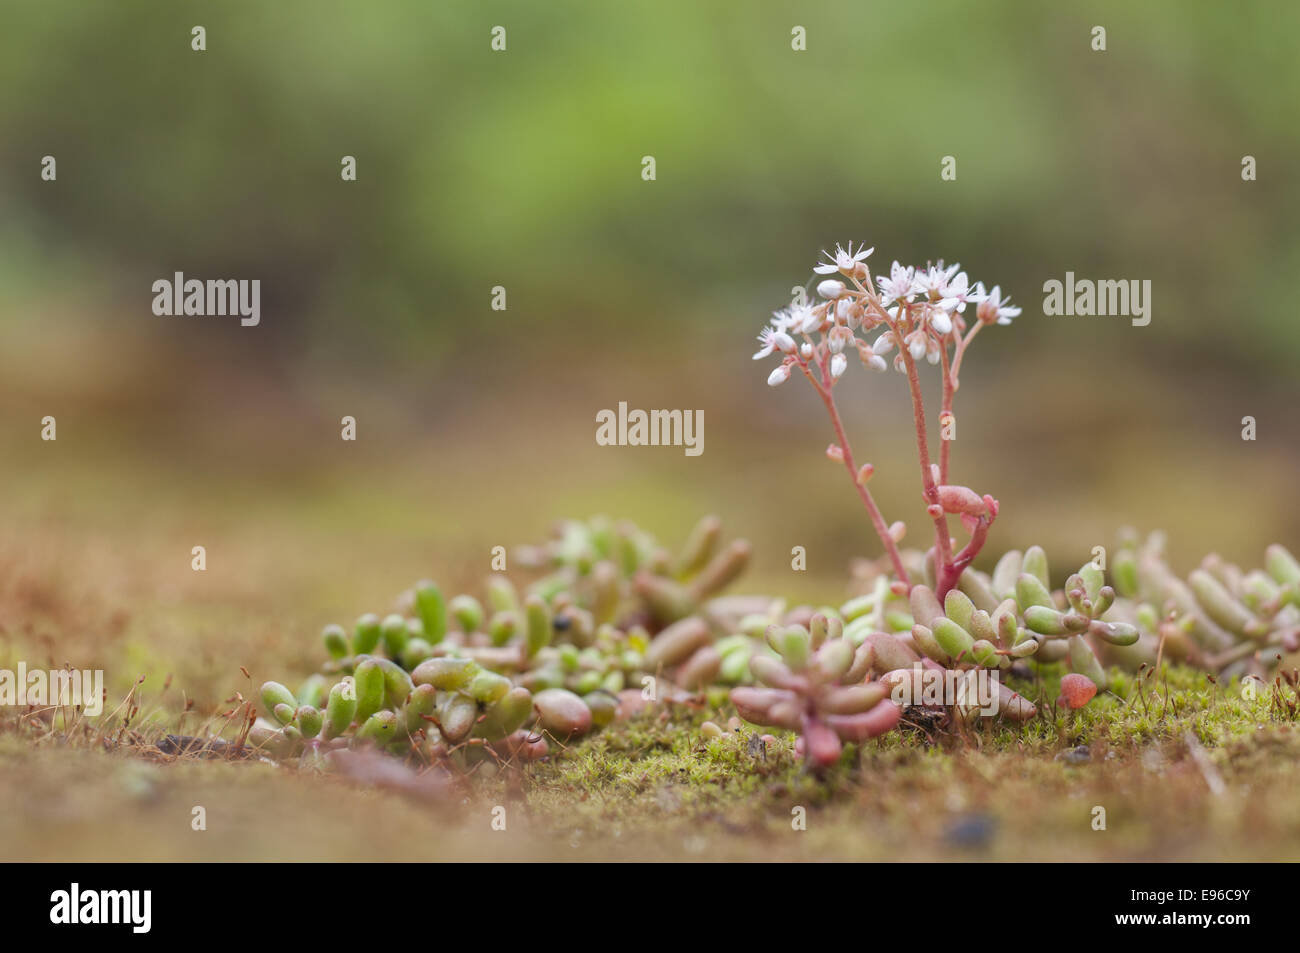 Orpin blanc (Sedum album), Allemagne Photo Stock